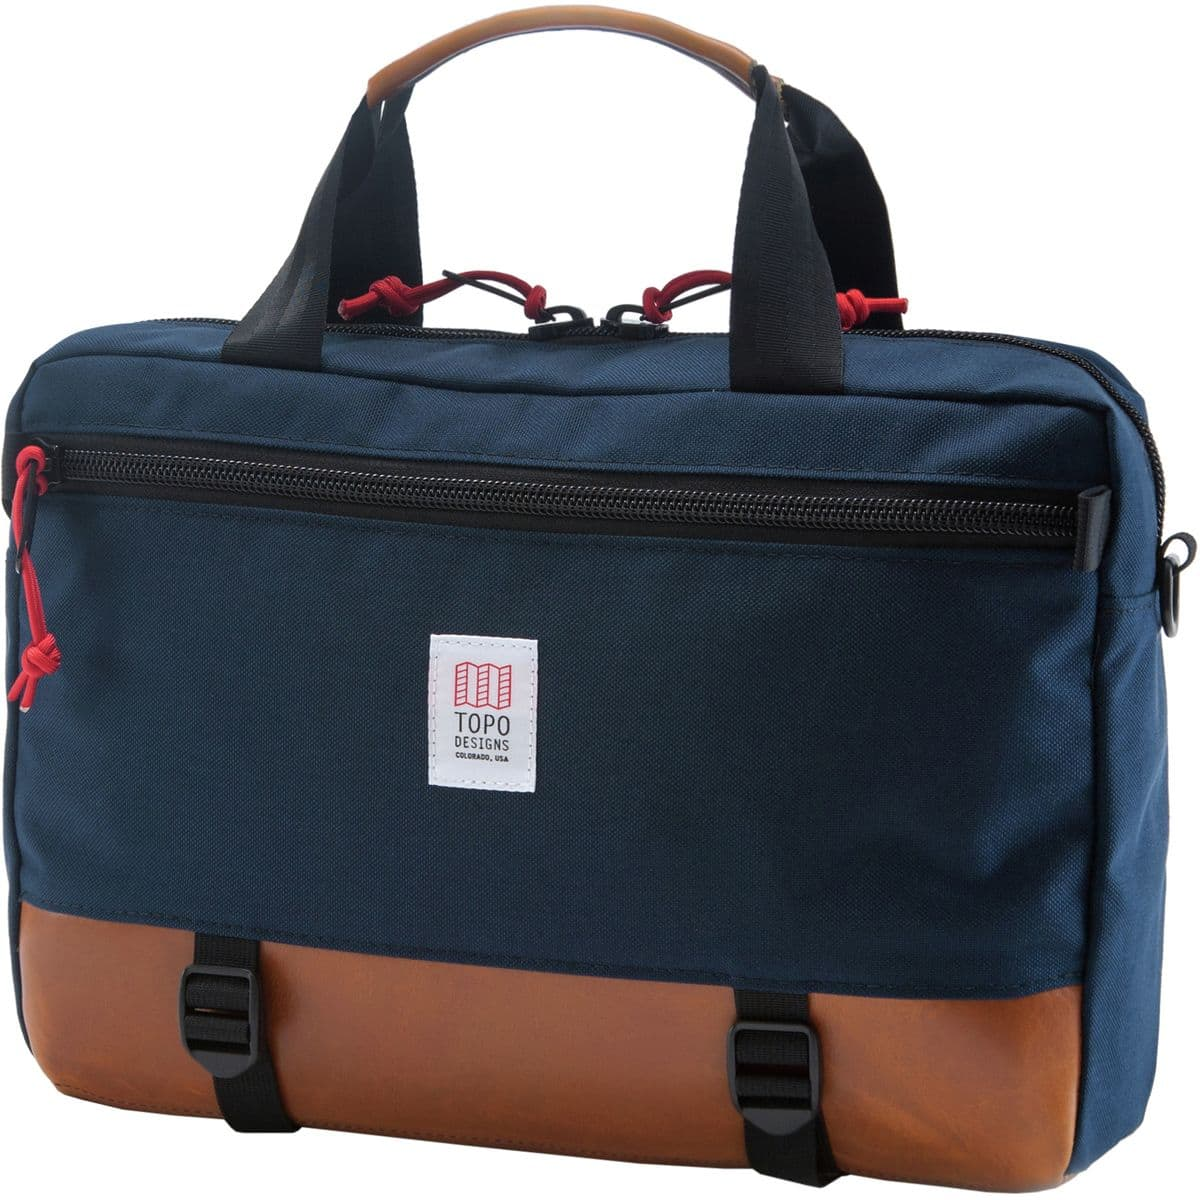 'Commuter' Briefcase Computer Bag $112.46